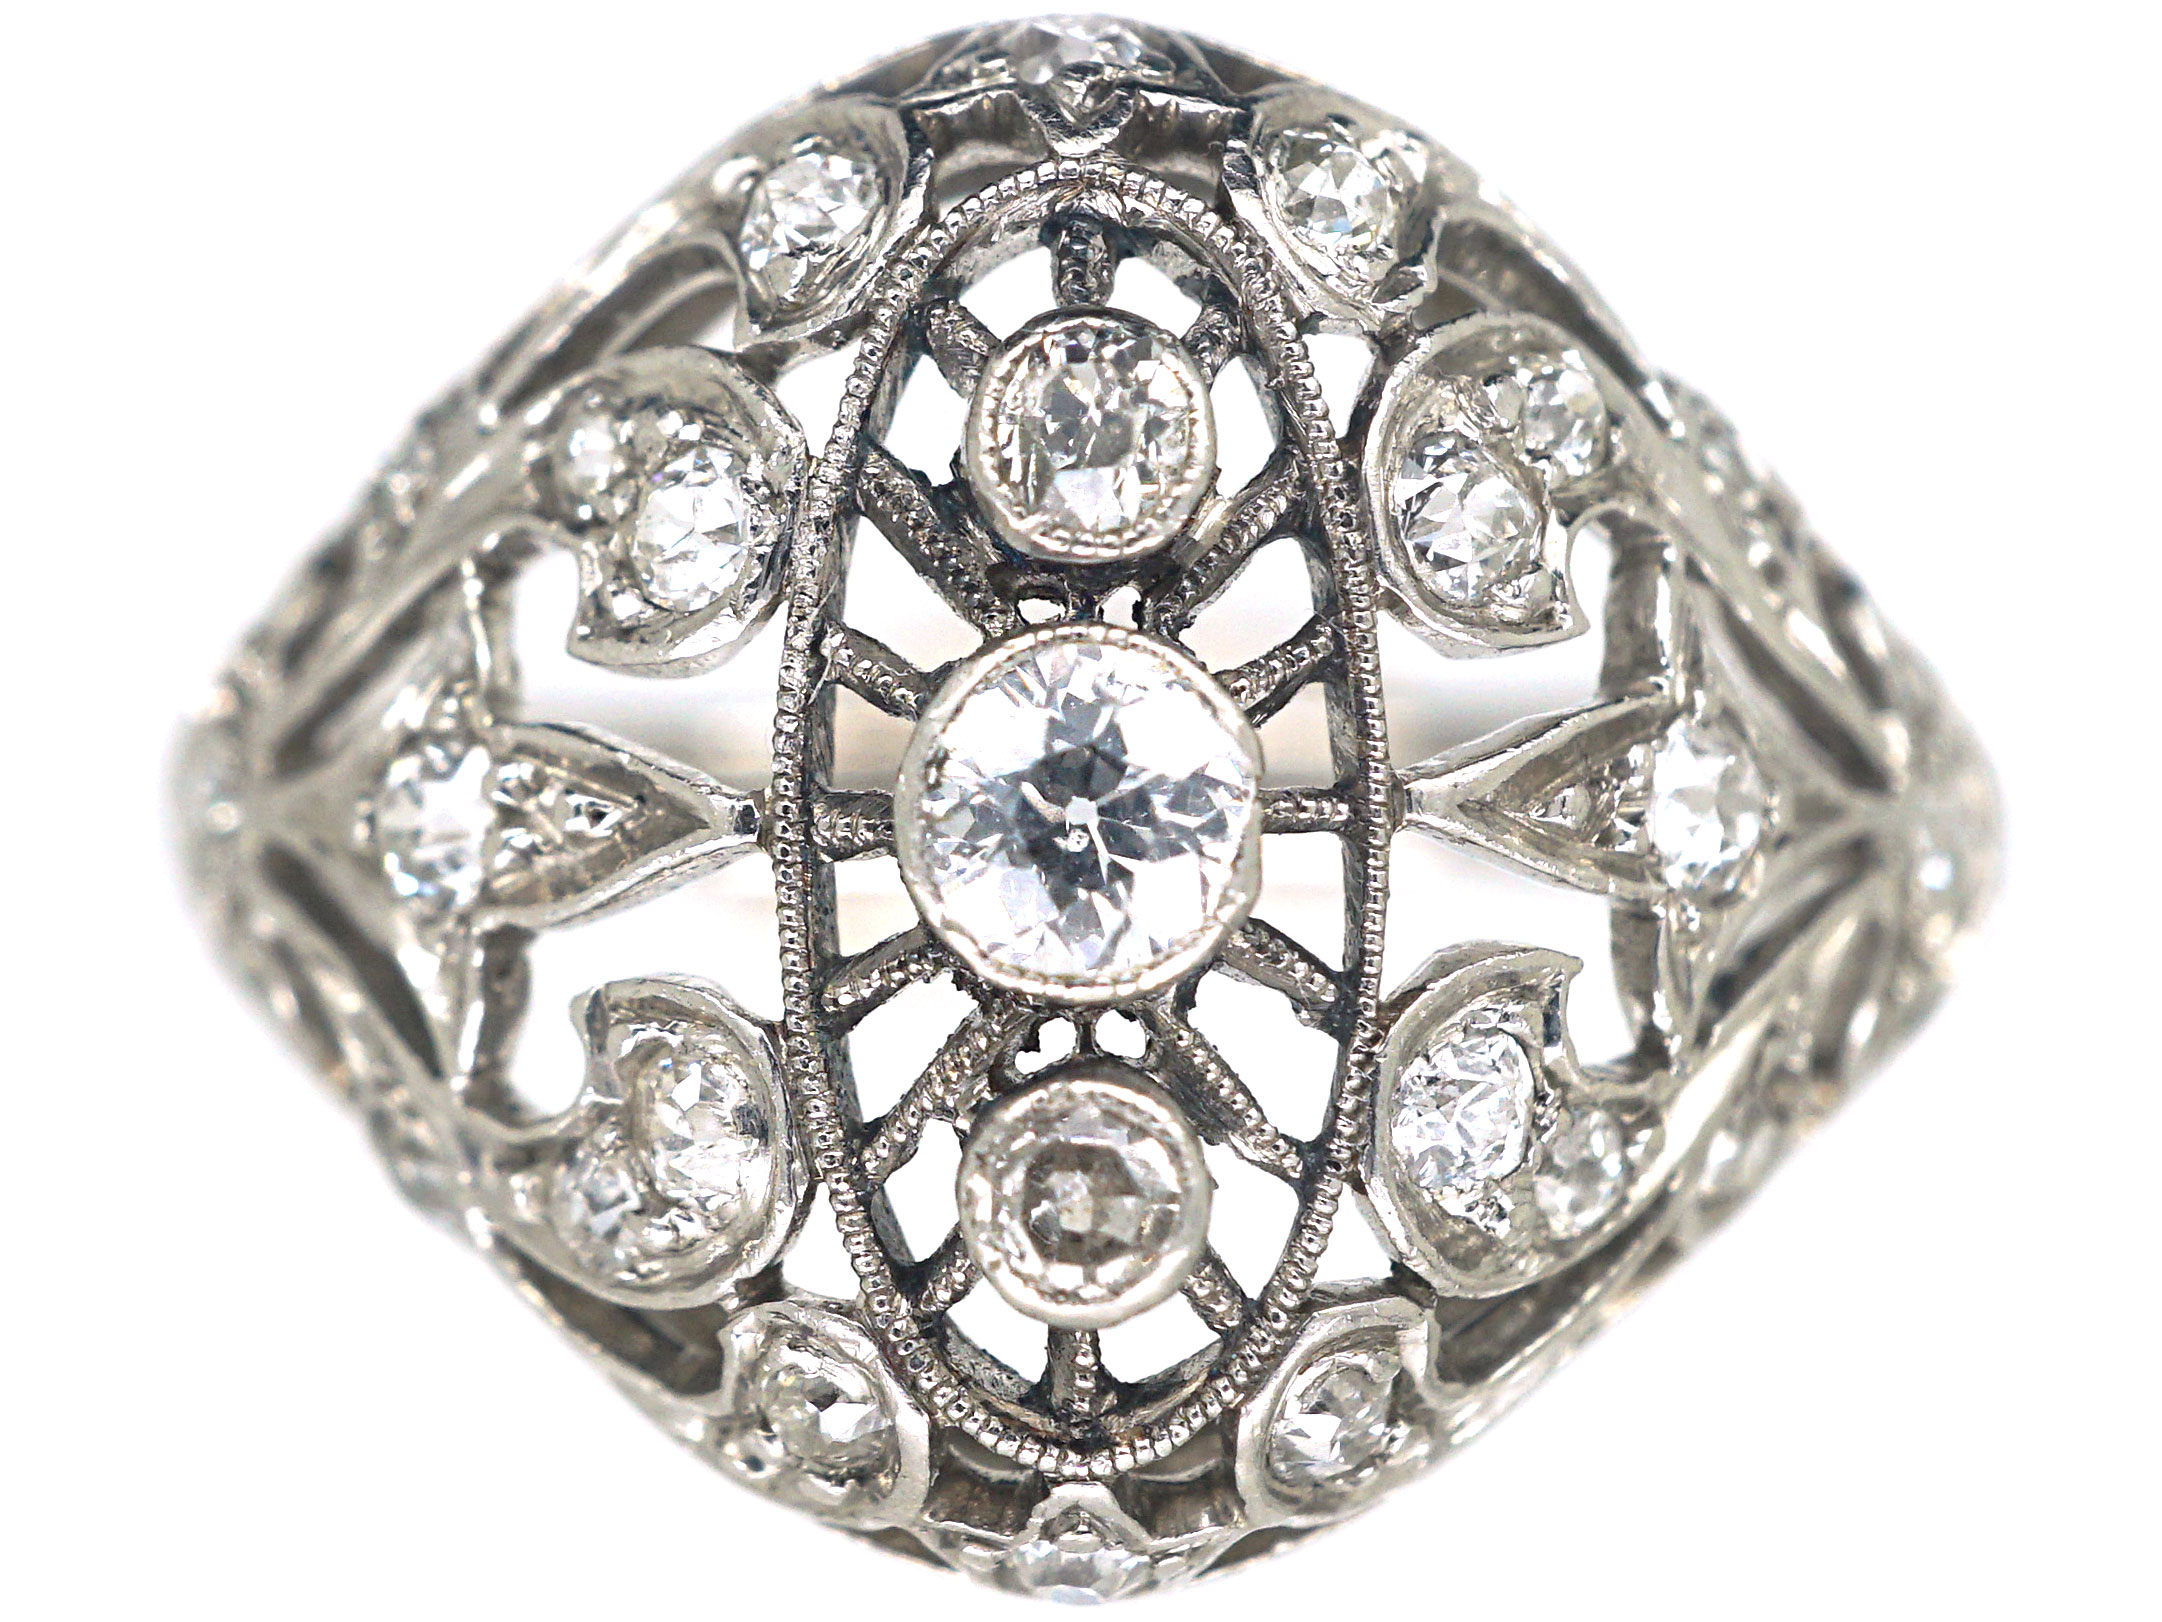 Art Deco Dome Shaped Ring set with Diamonds by Pickslay & Co